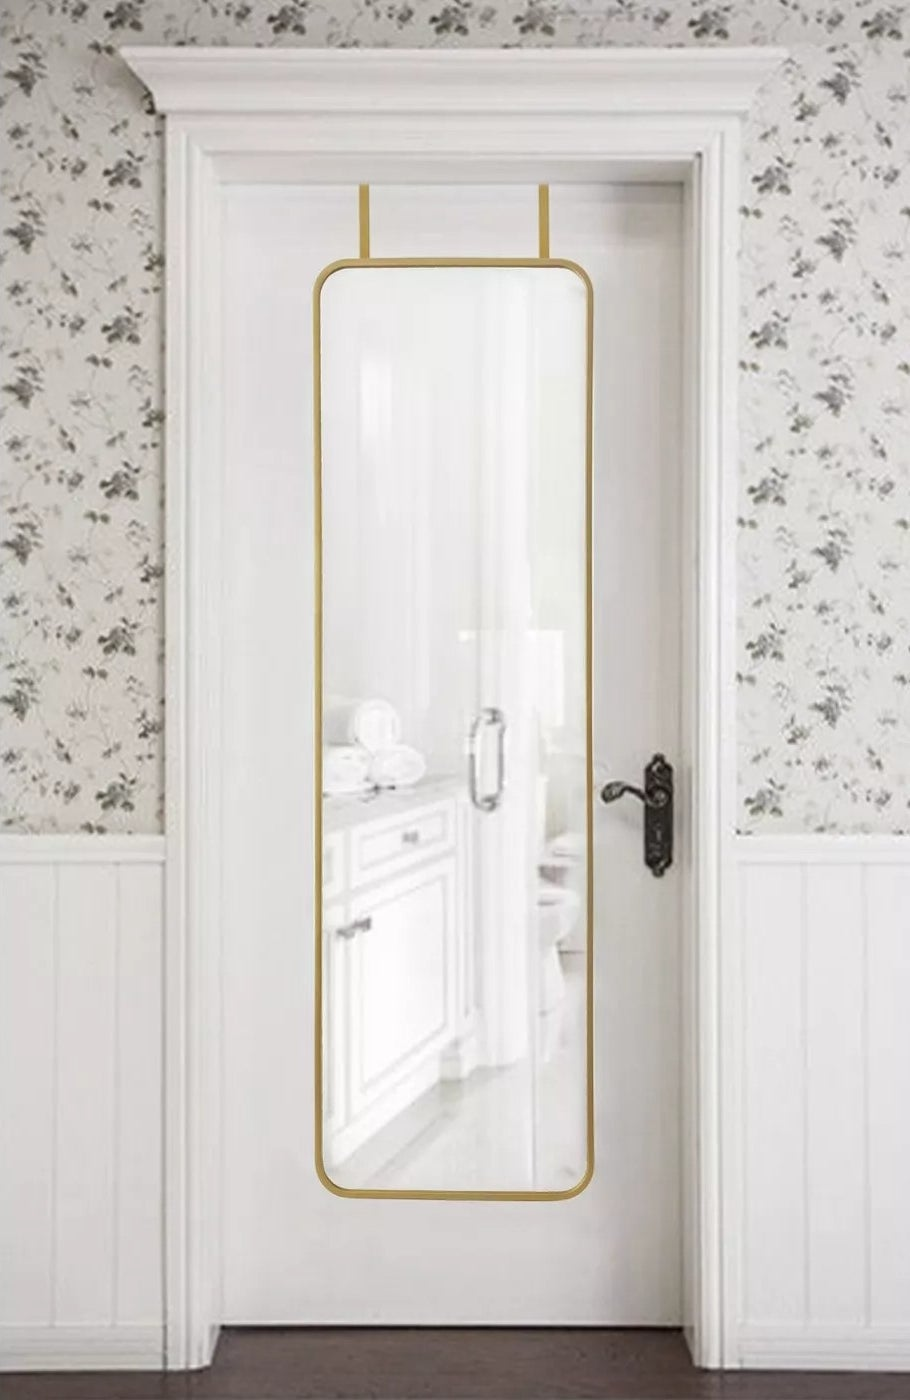 The brass-trimmed mirror with rounded edges hanging on a door